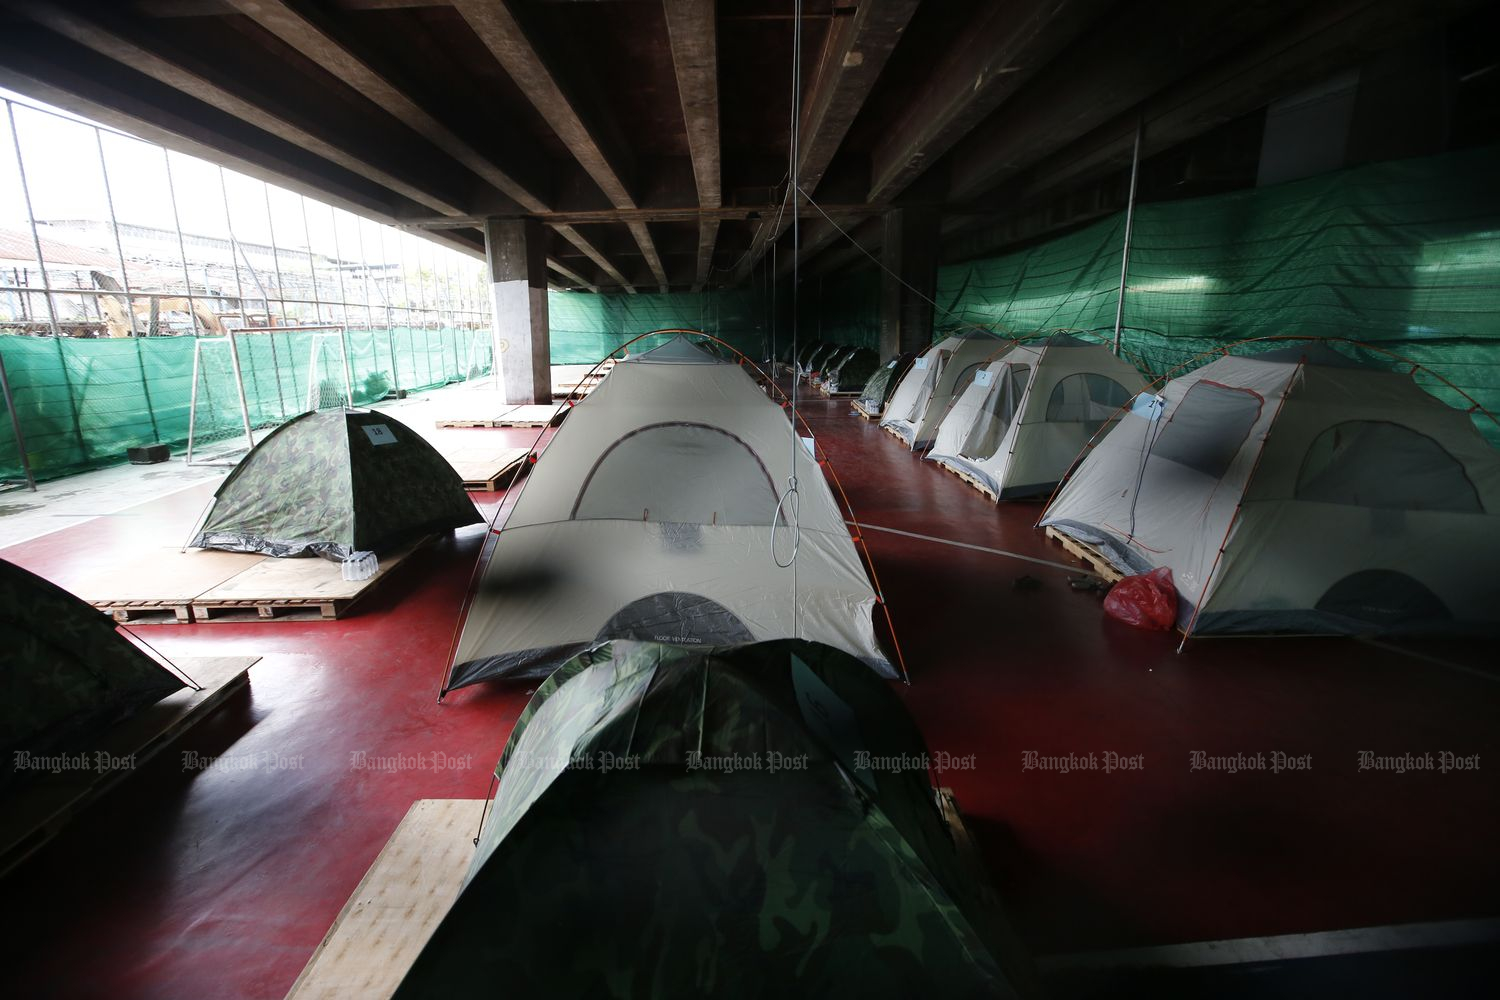 Tents are seen under the Expressway in Klong Toey district in Bangkok on Monday. Covid-19 infected people in communities stay in them while waiting to be sent to hospitals. (Photo by Wichan Charoenkiatpakul)